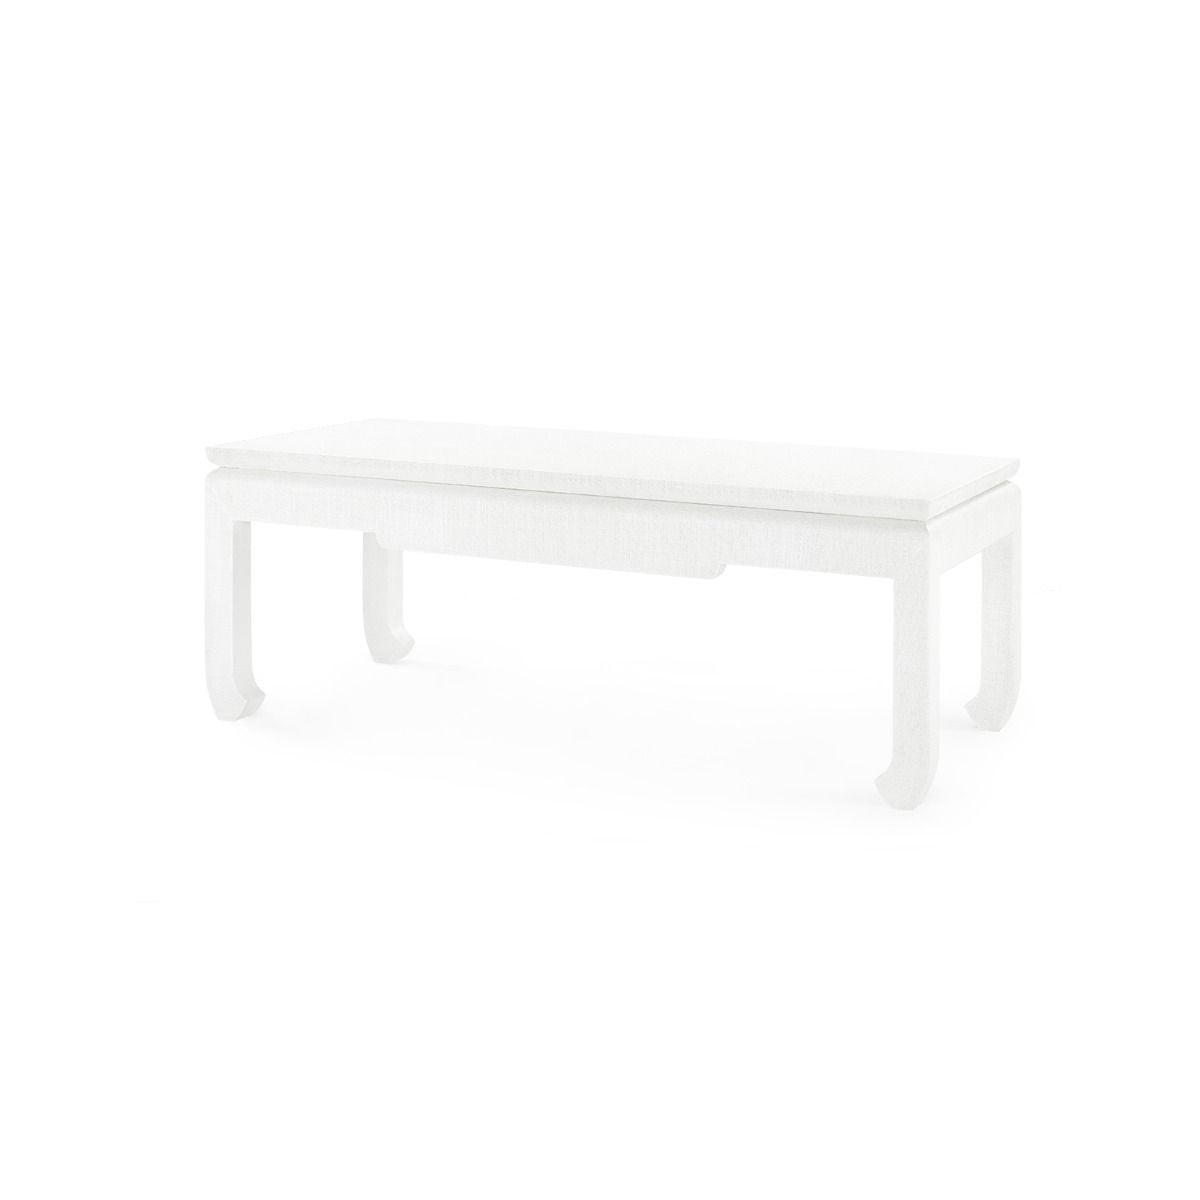 Bungalow 5 - BETHANY COFFEE TABLE, WHITE-Bungalow 5-Blue Hand Home